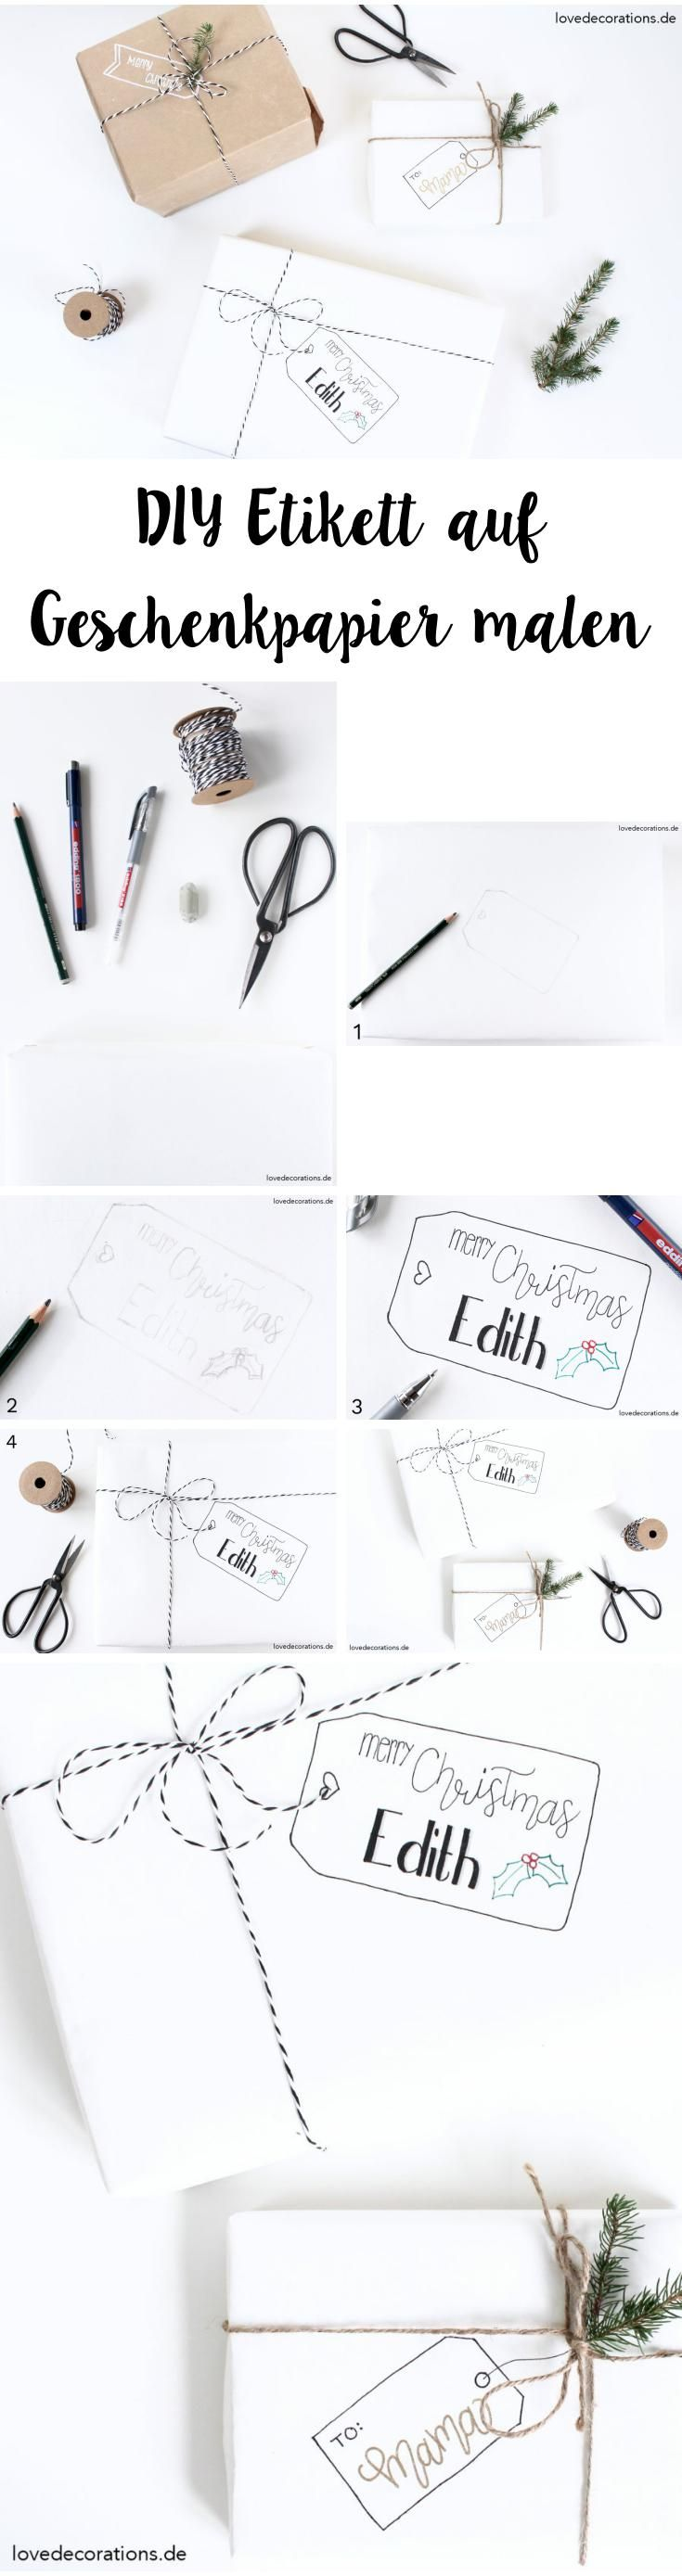 DIY Etikett auf Geschenkpapier malen | Draw Christmas Tags on Wrapping Paper